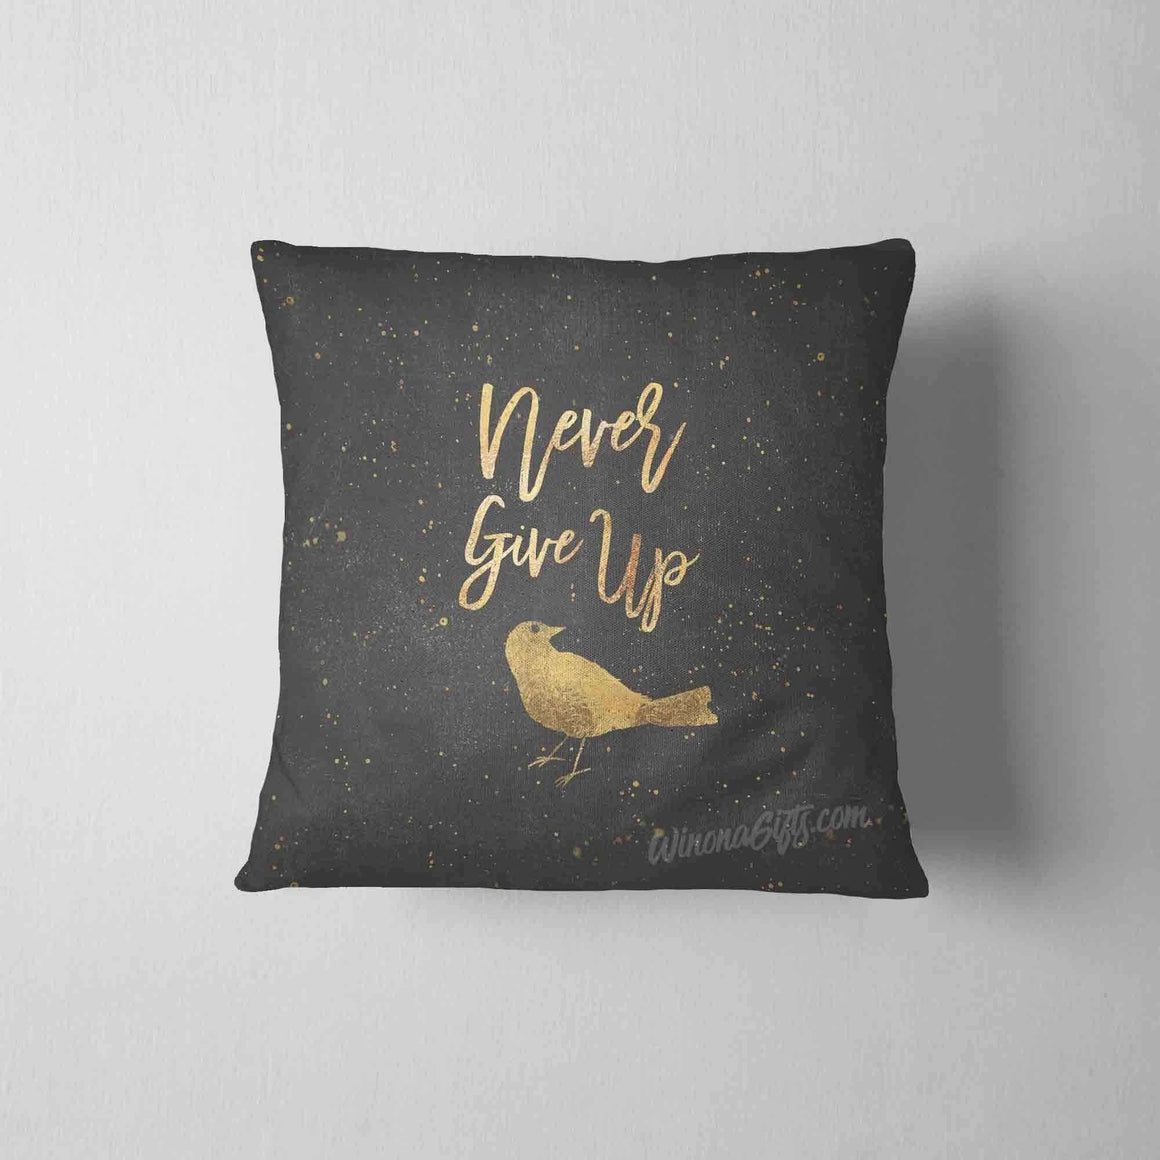 Inspirational Pillow, Never Give Up